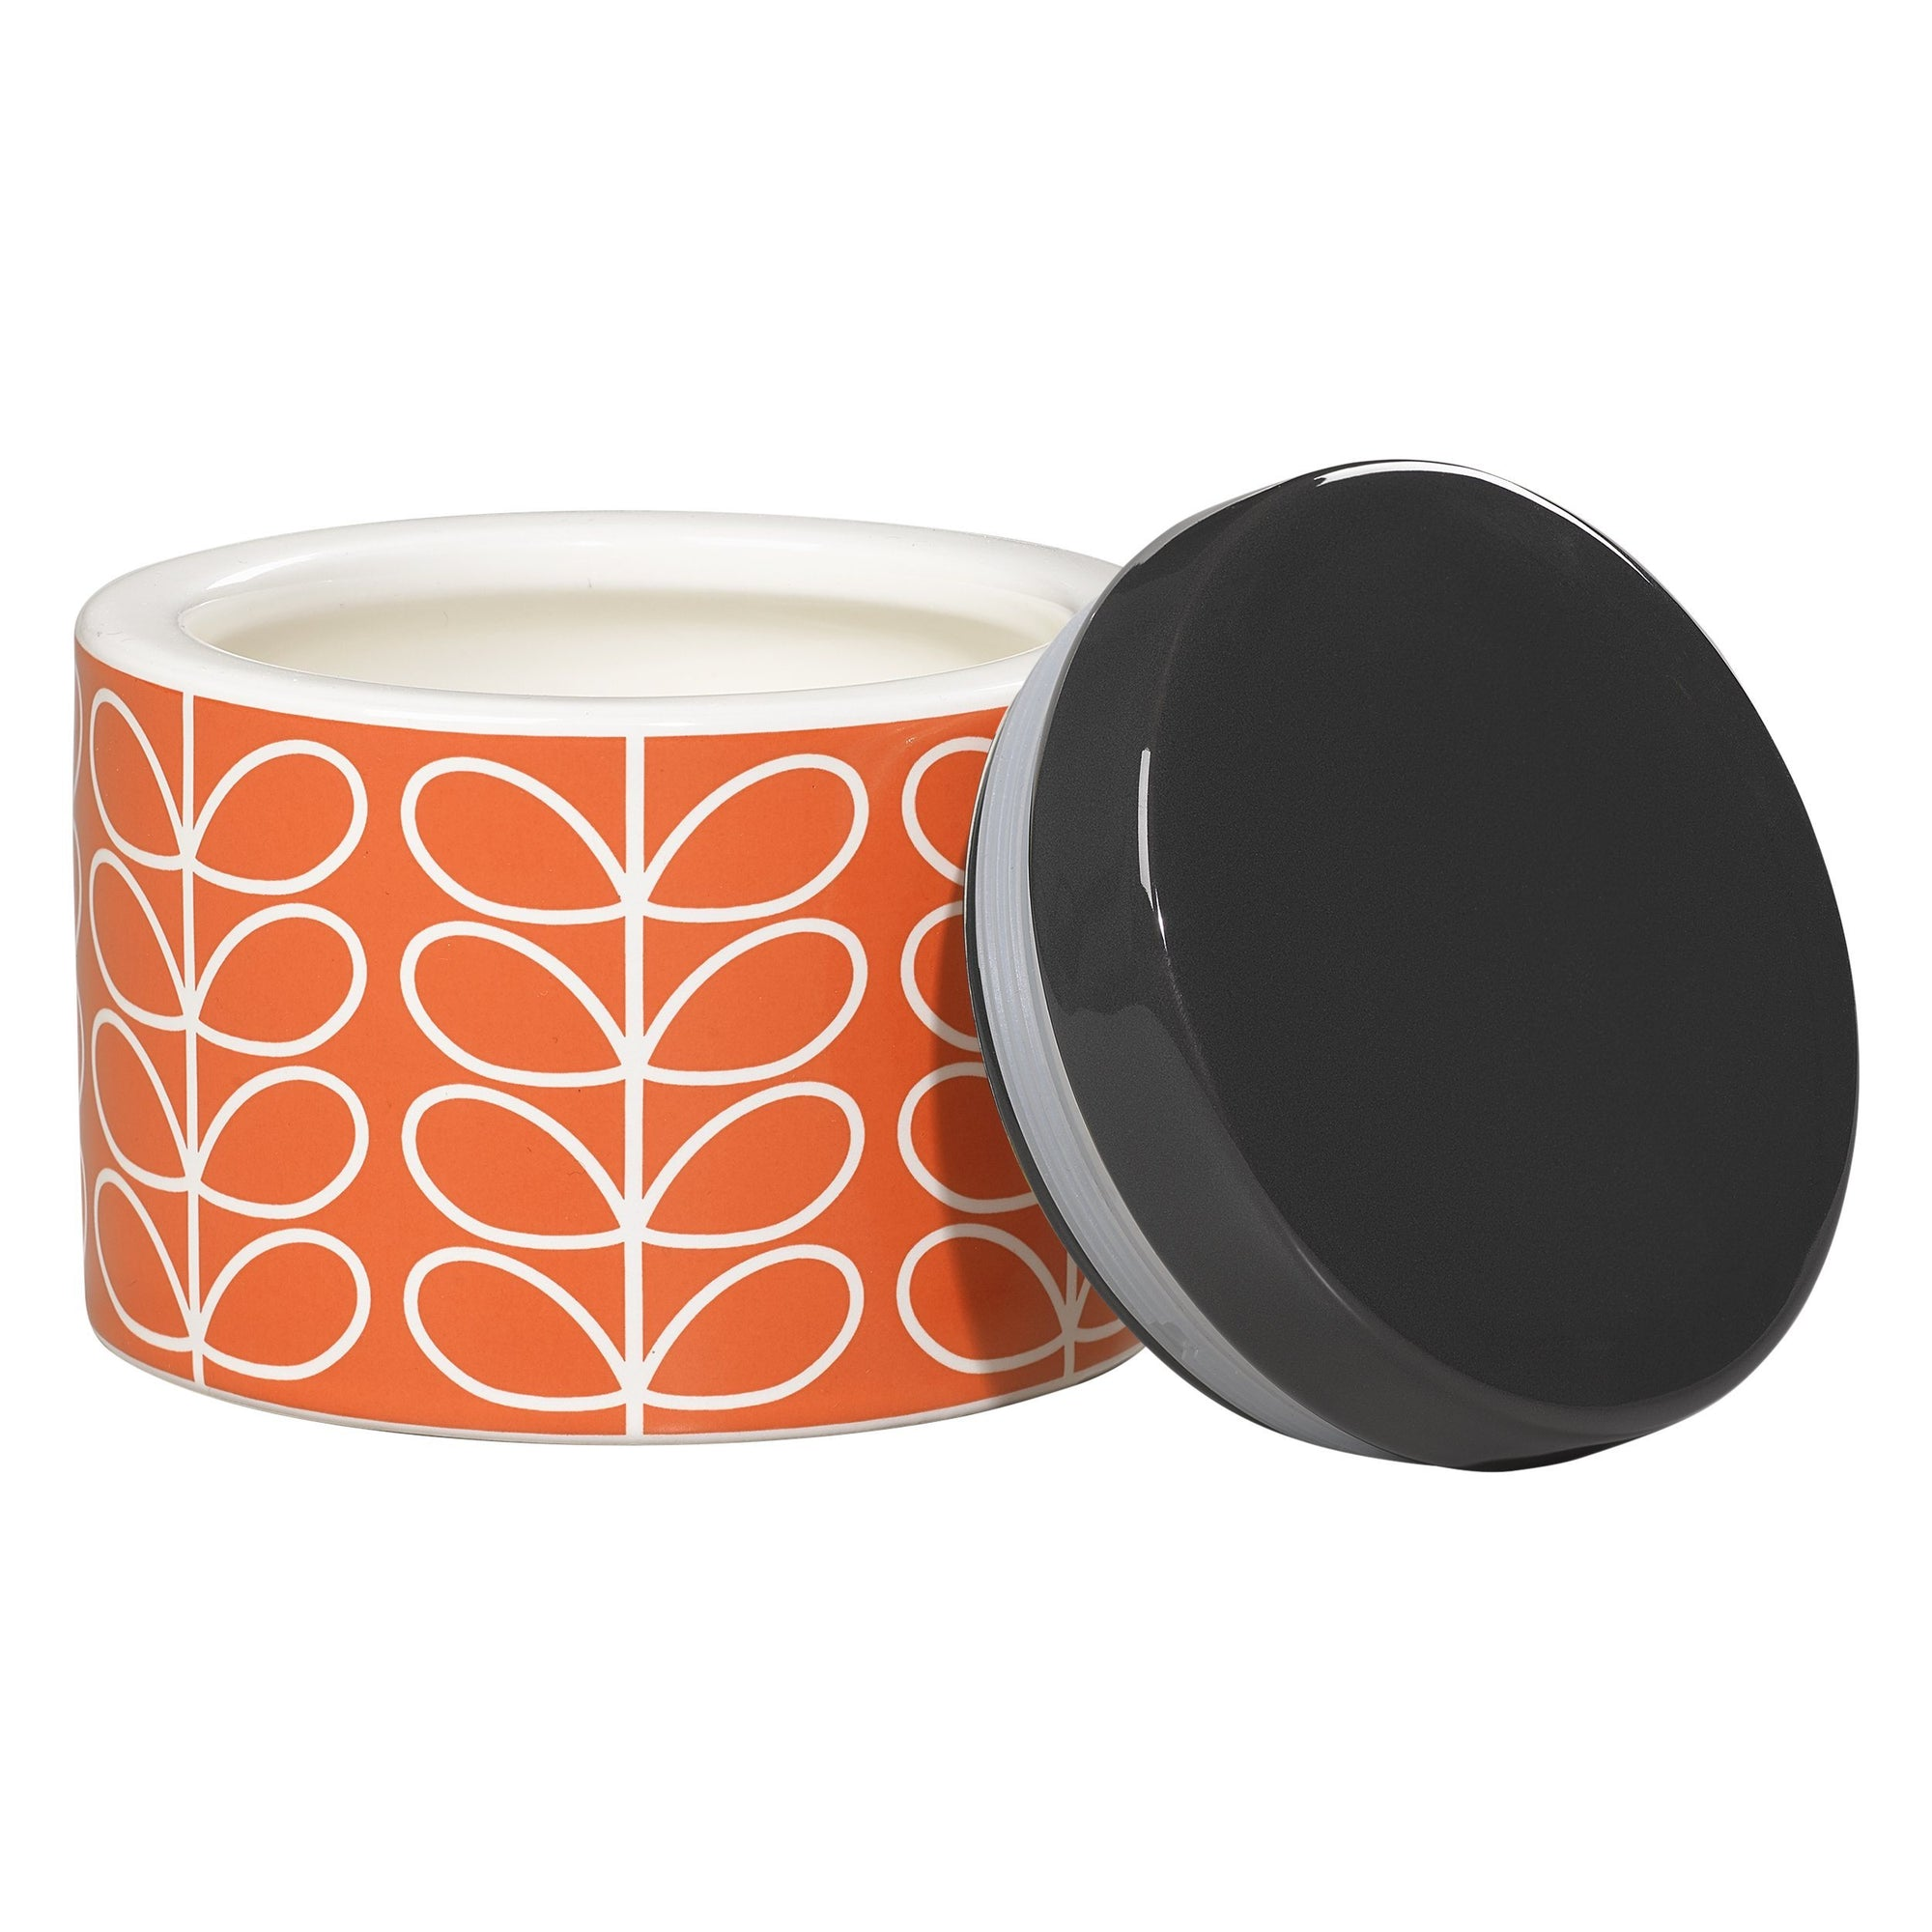 Orla Kiely Persimmon Ceramic Small Storage Jar - BouChic